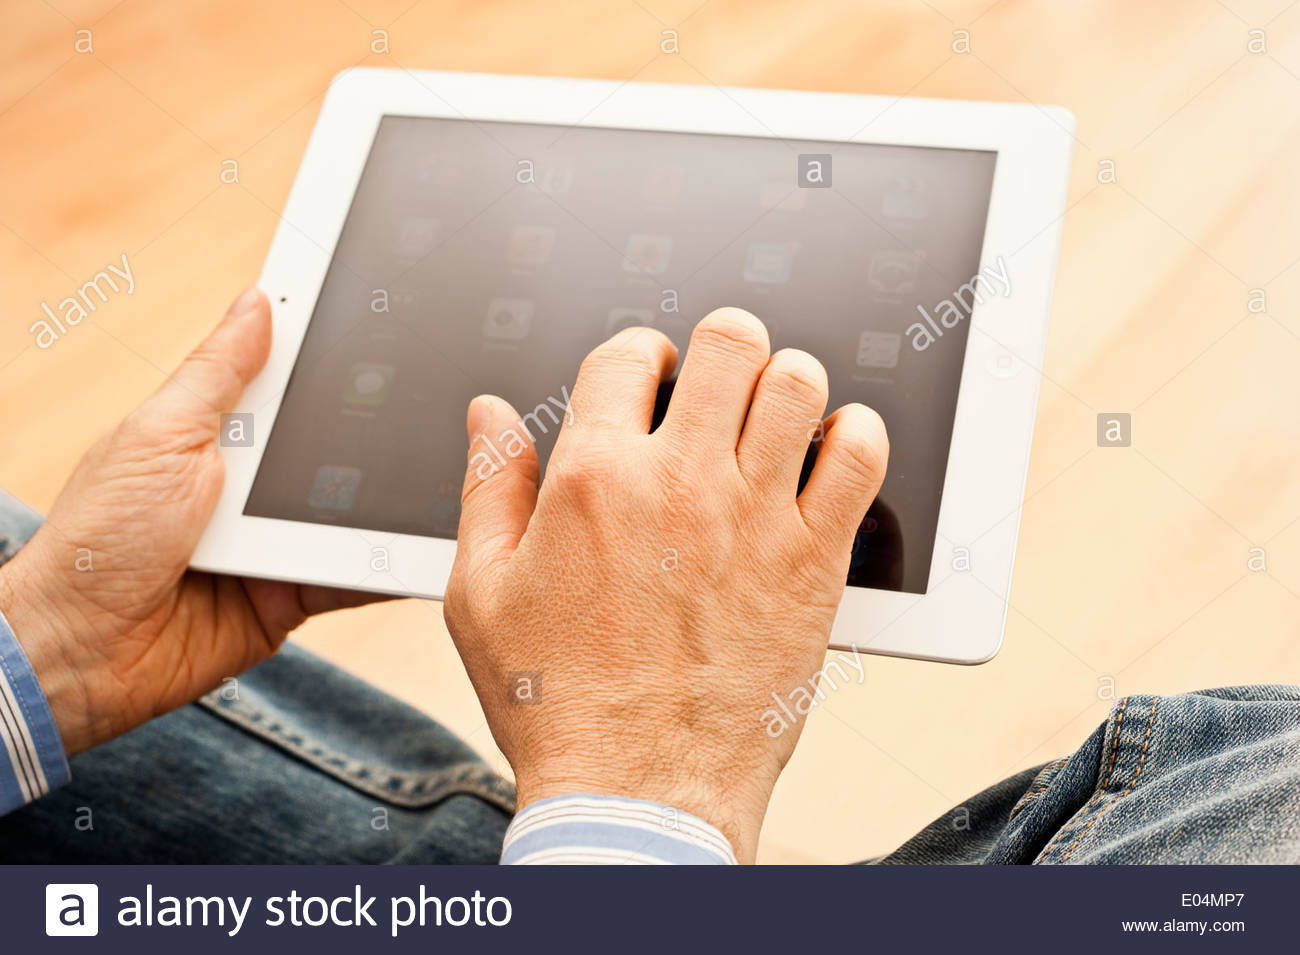 man hands holding and using a tablet computer - Stock Image